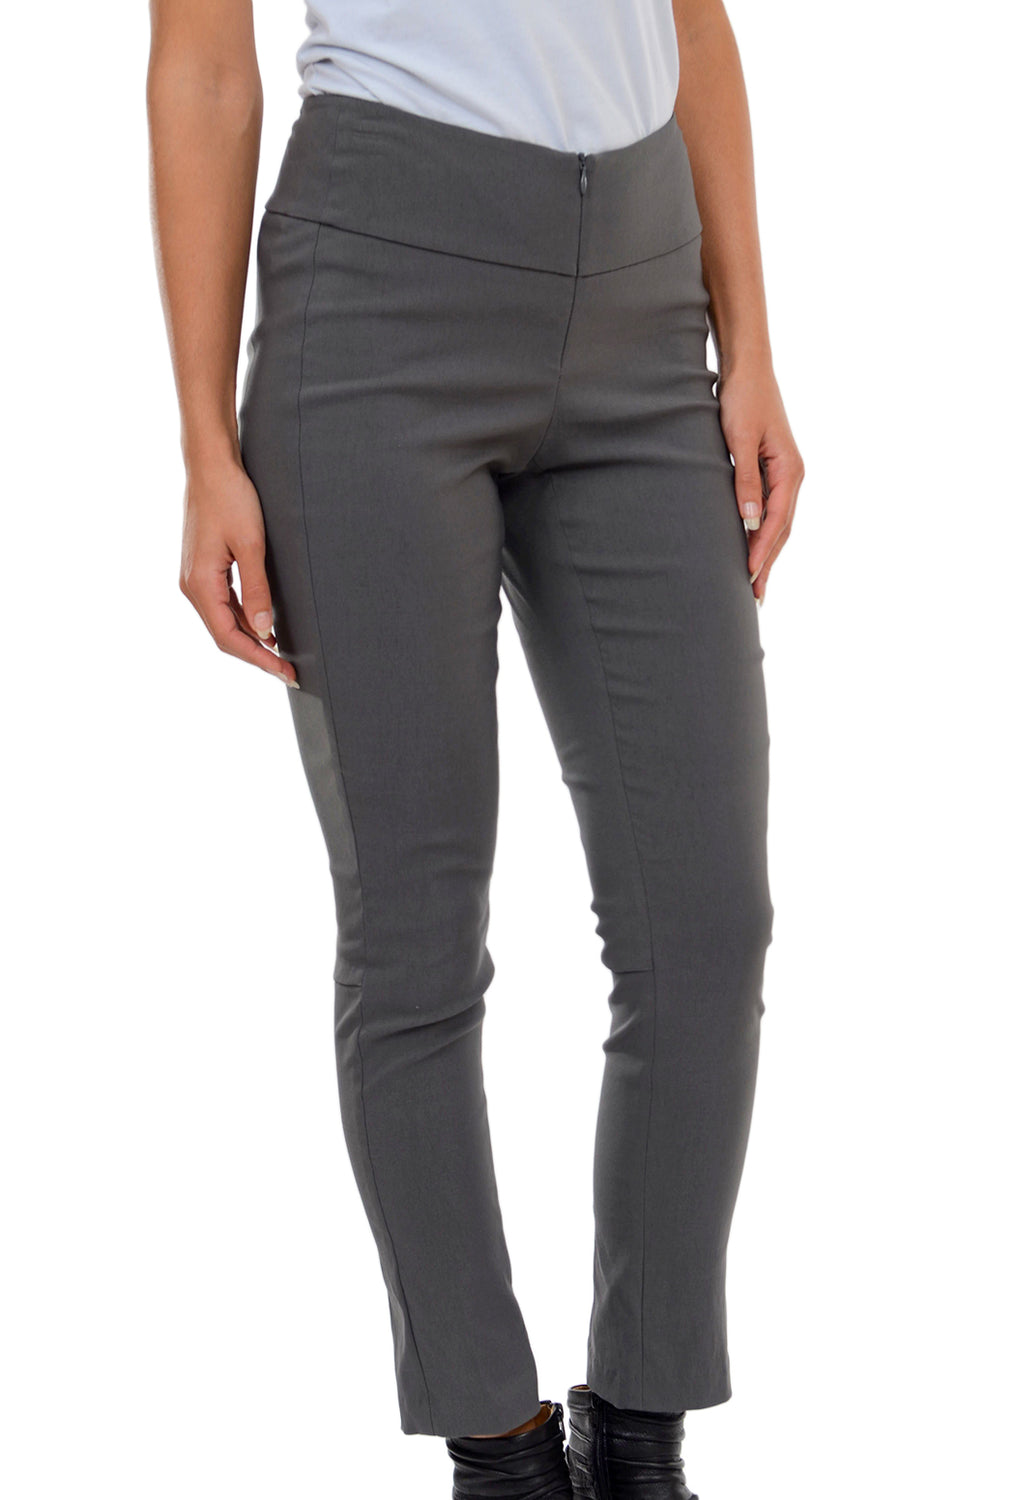 Porto Hudson Pant, Nickel Gray